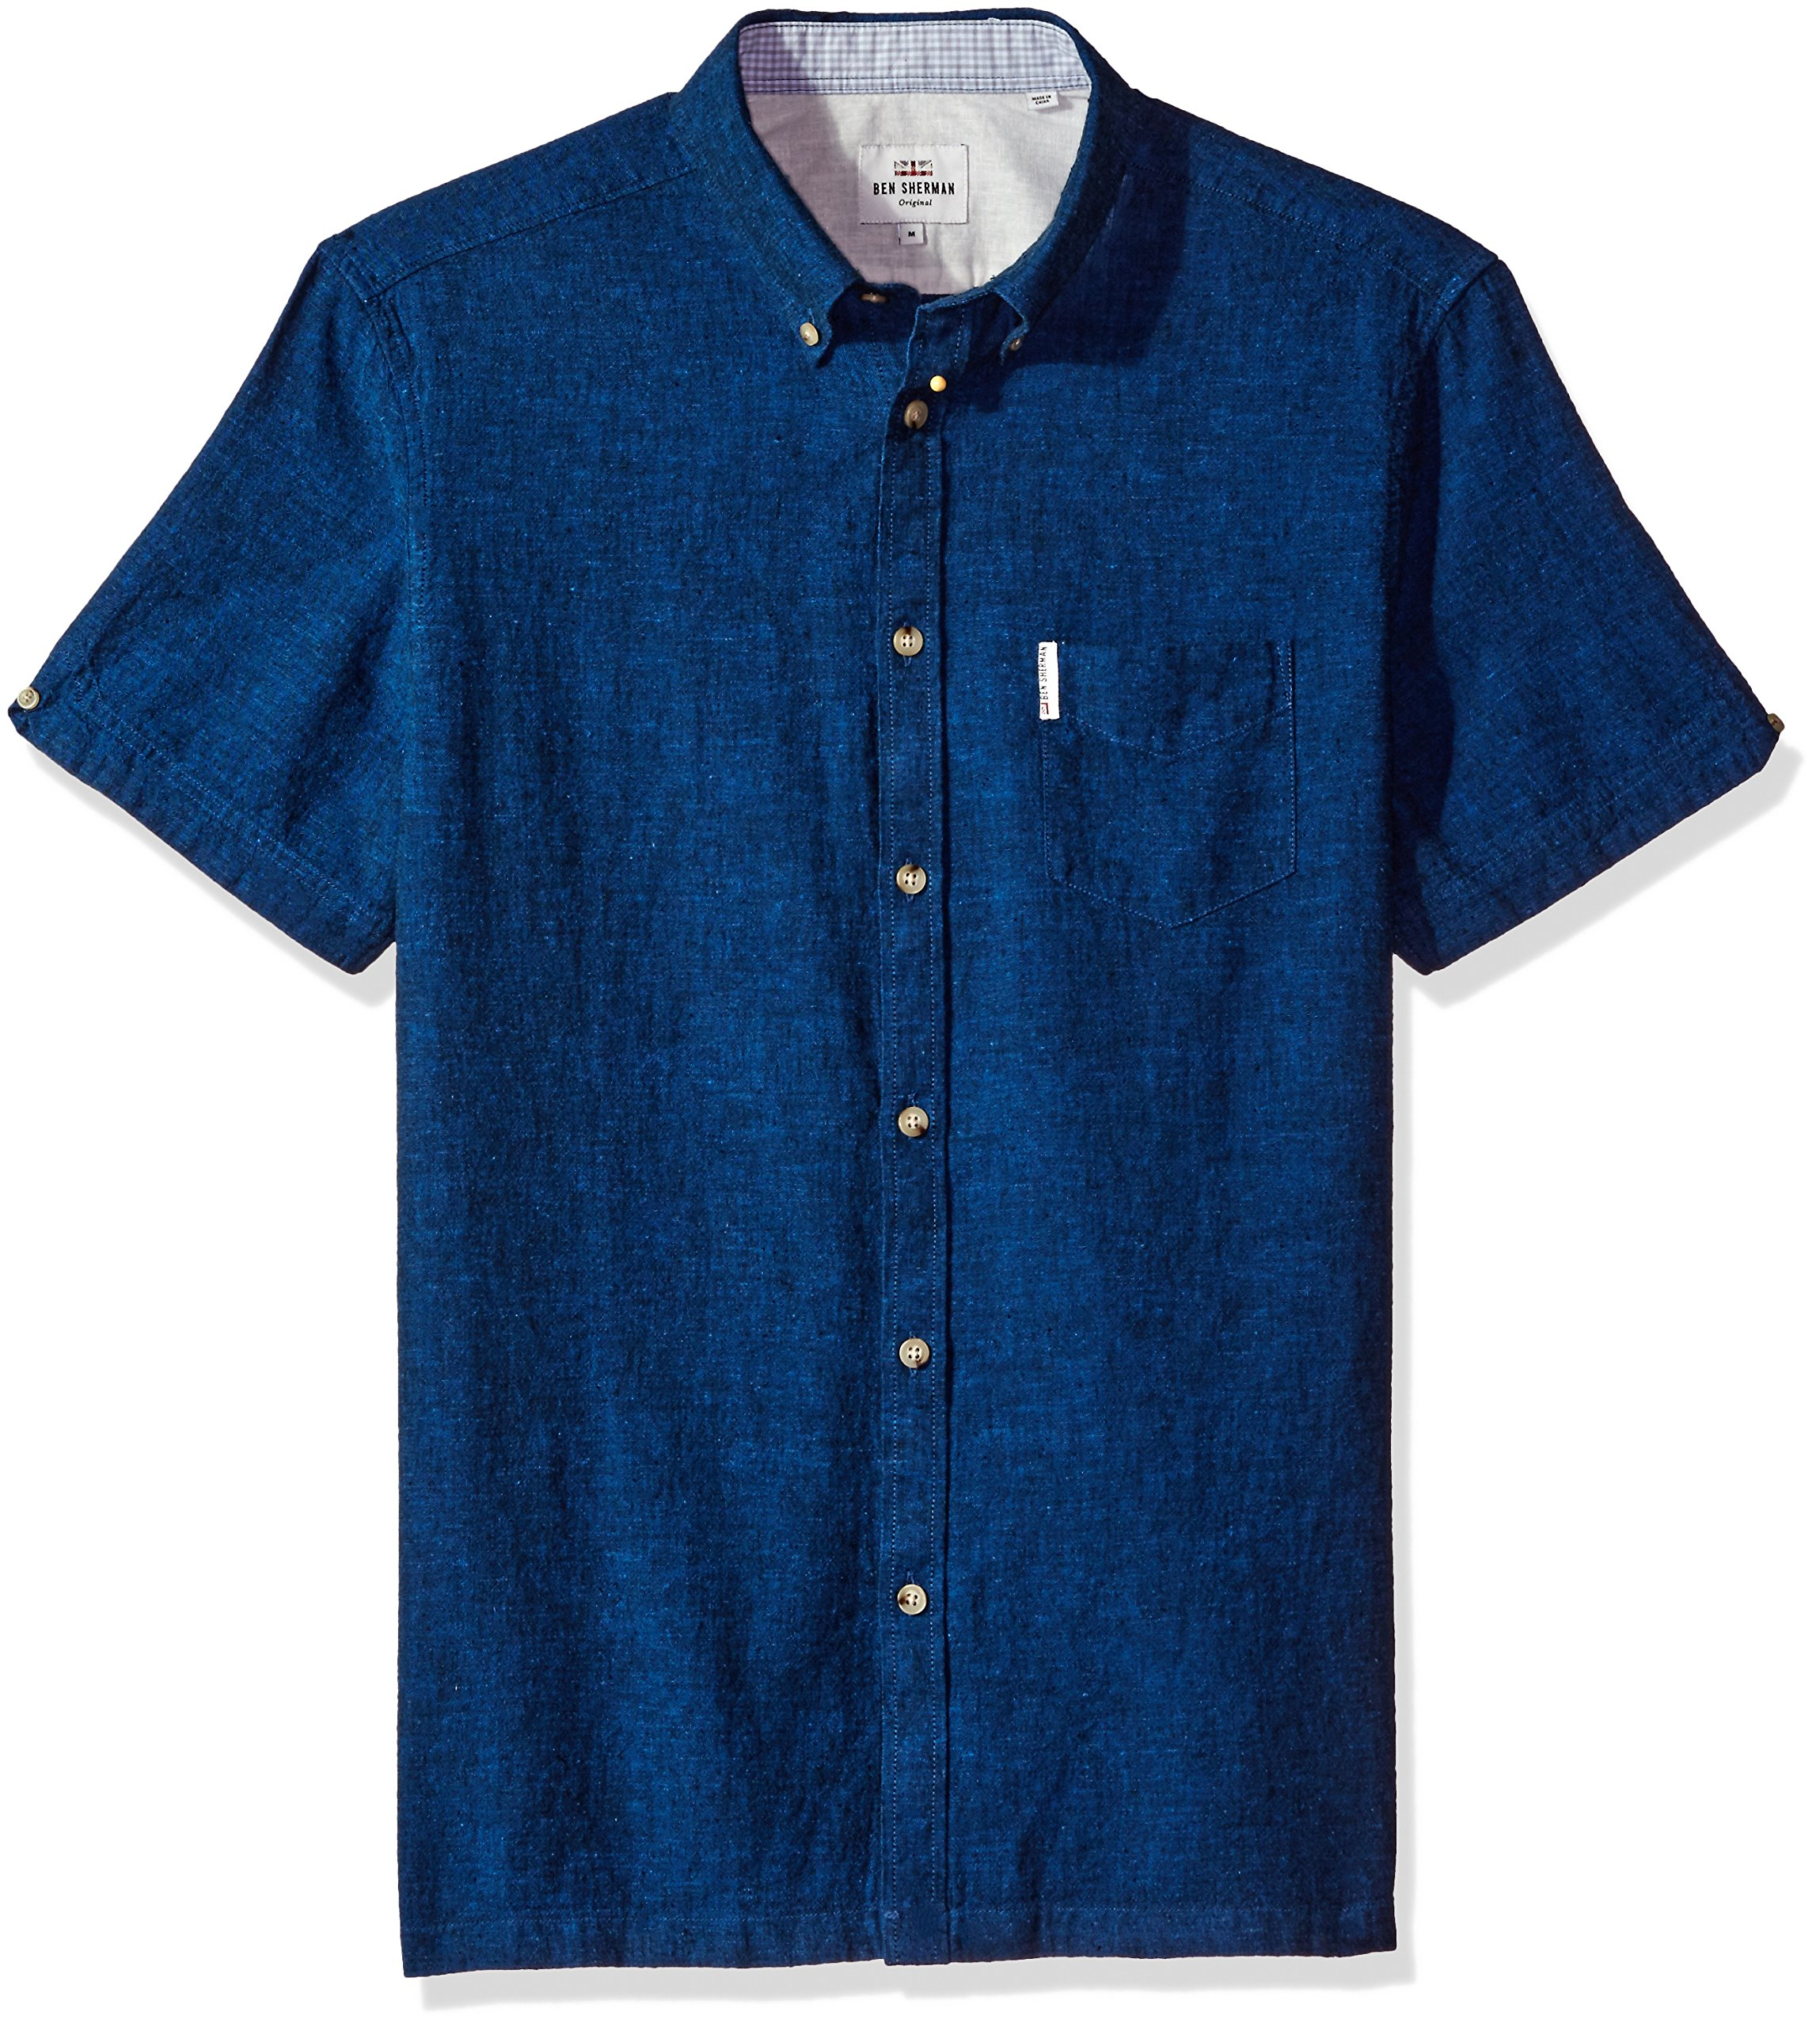 Ben Sherman Men's Short Sleeve Modern Plain/Linen Summer, Navy Blazer, Large by Ben Sherman